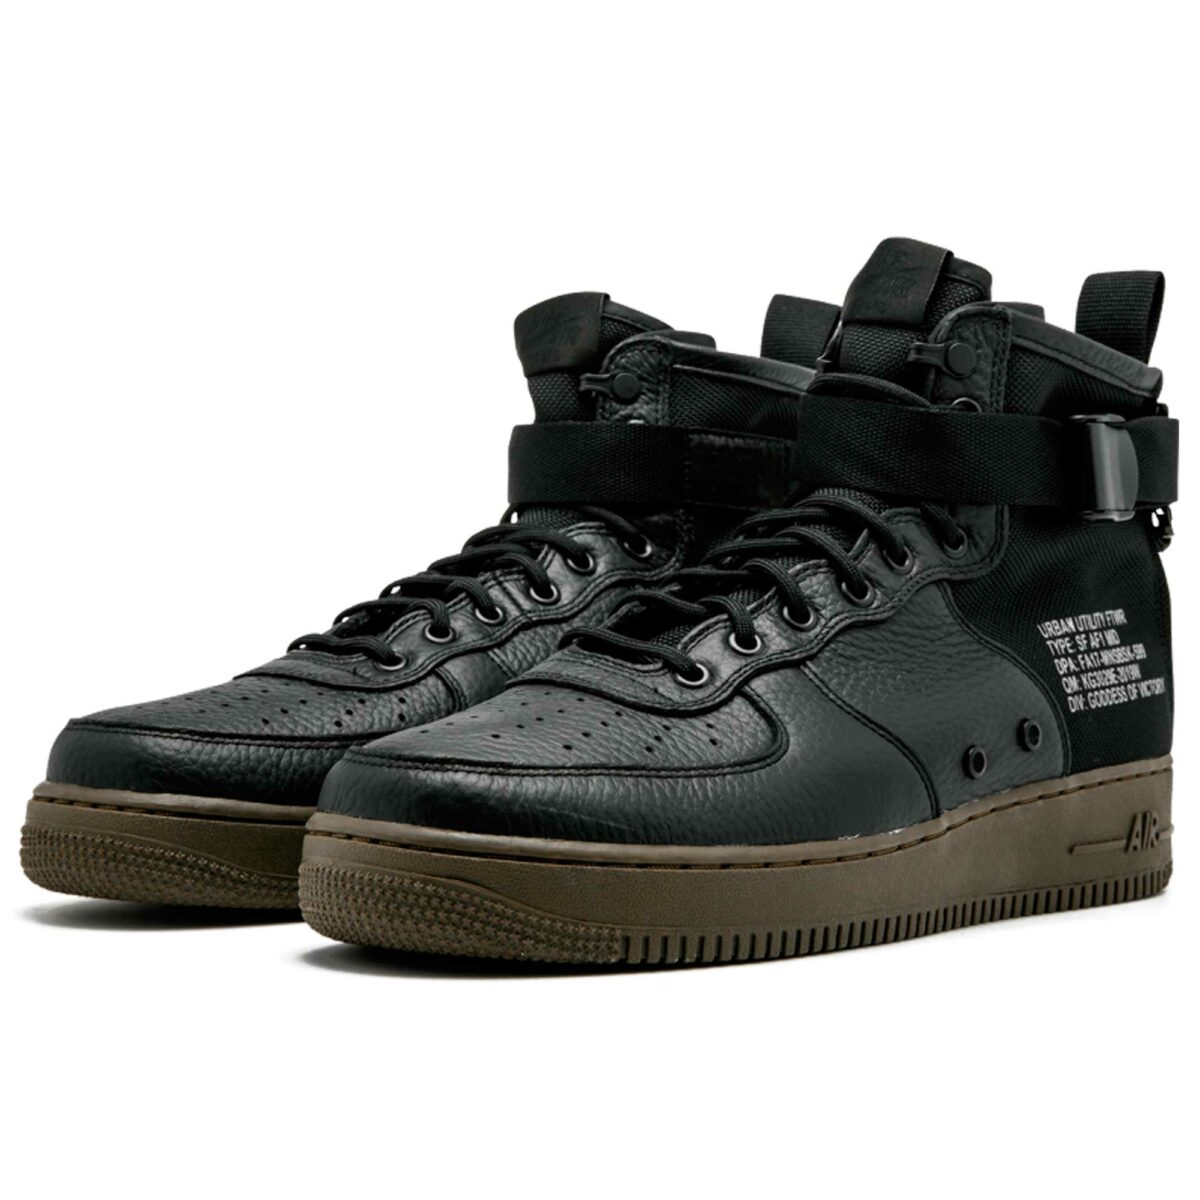 nike sf air force 1 mid black 917753-002 купить